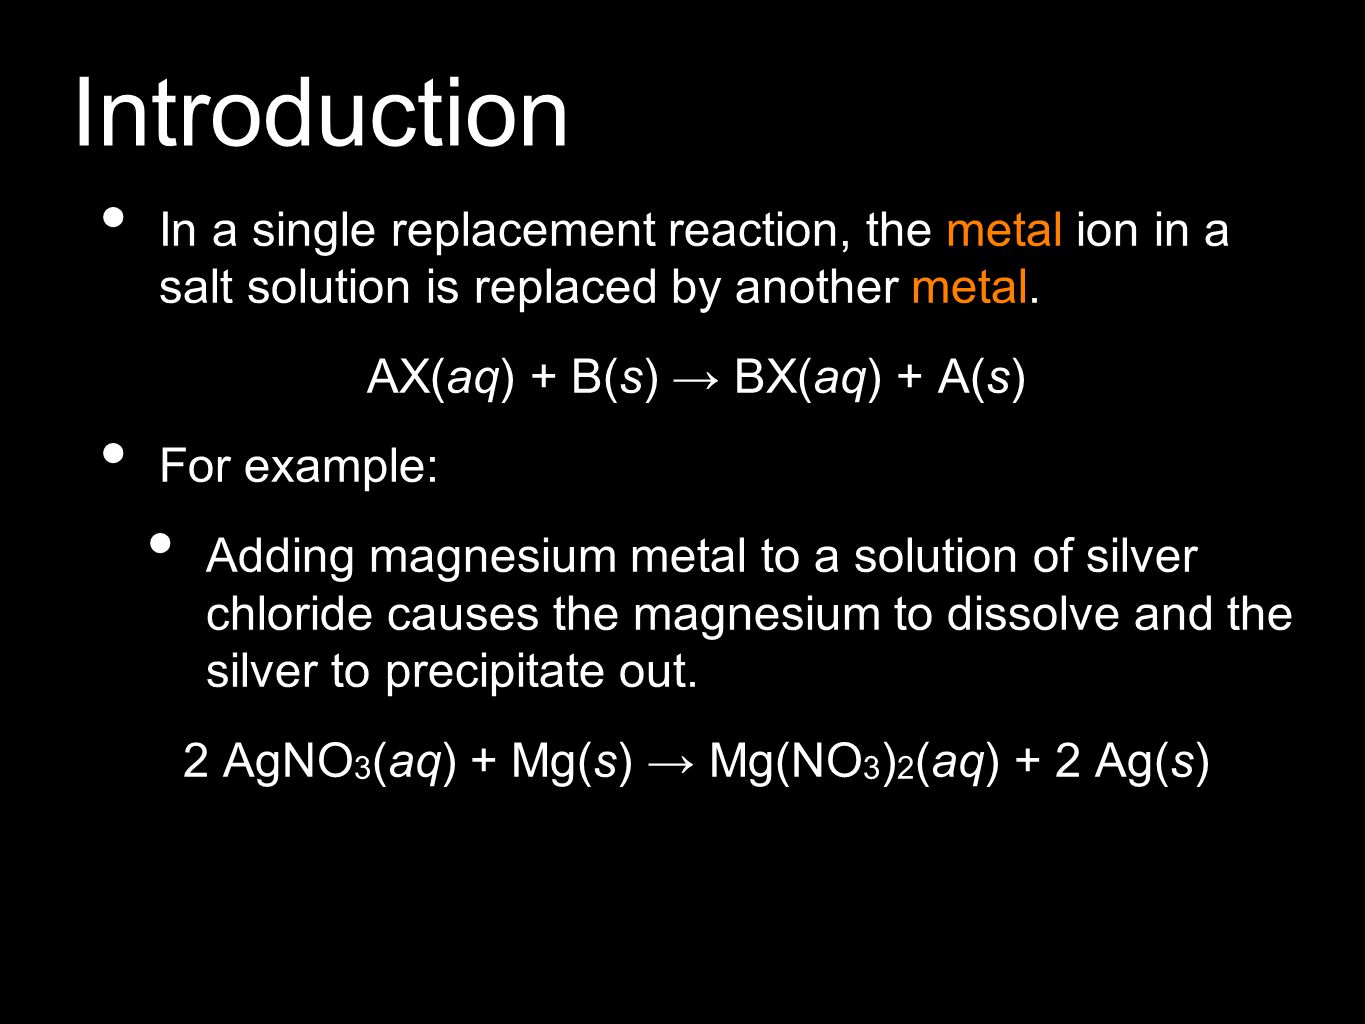 Introduction In a single replacement reaction, the metal ion in a salt solution is replaced by another metal. AX(aq) + B(s) → BX(aq) + A(s) For exampl